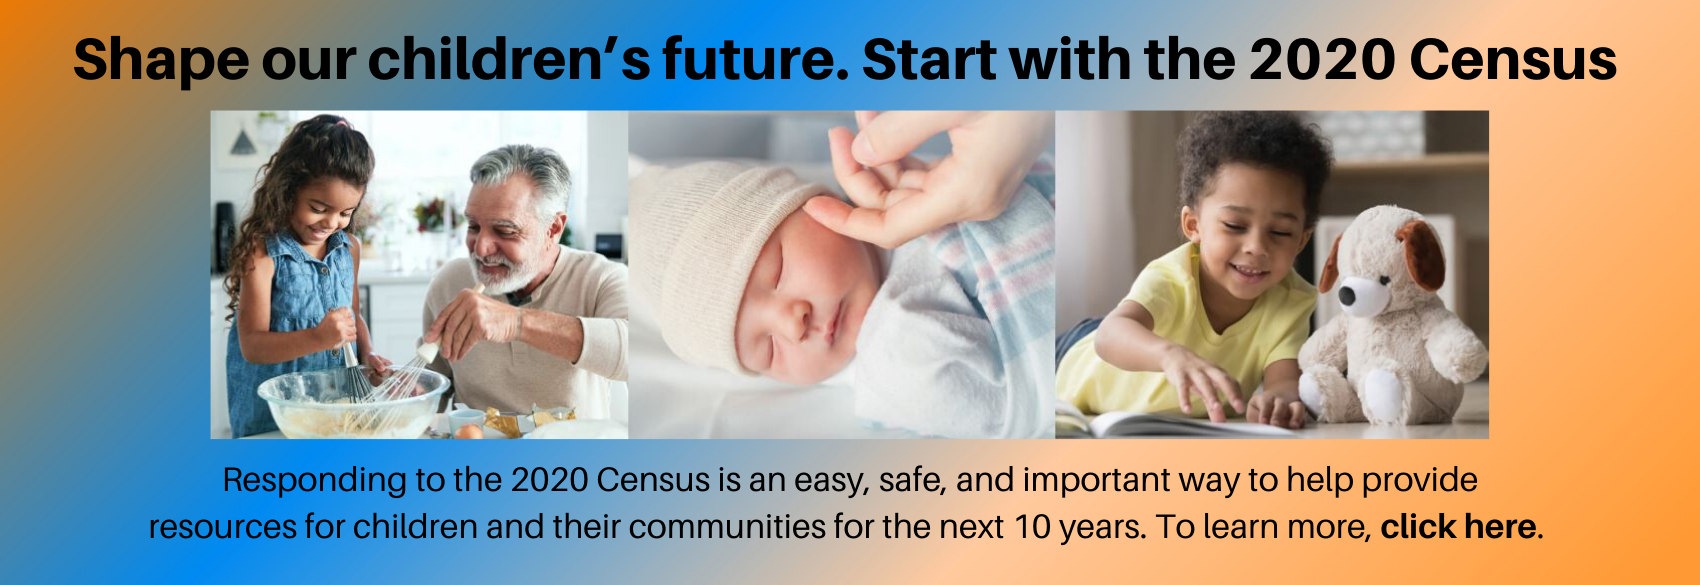 Responding to the 2020 Census is an easy, safe, and important way to help provide resources for children and their communities for the next 10 years.